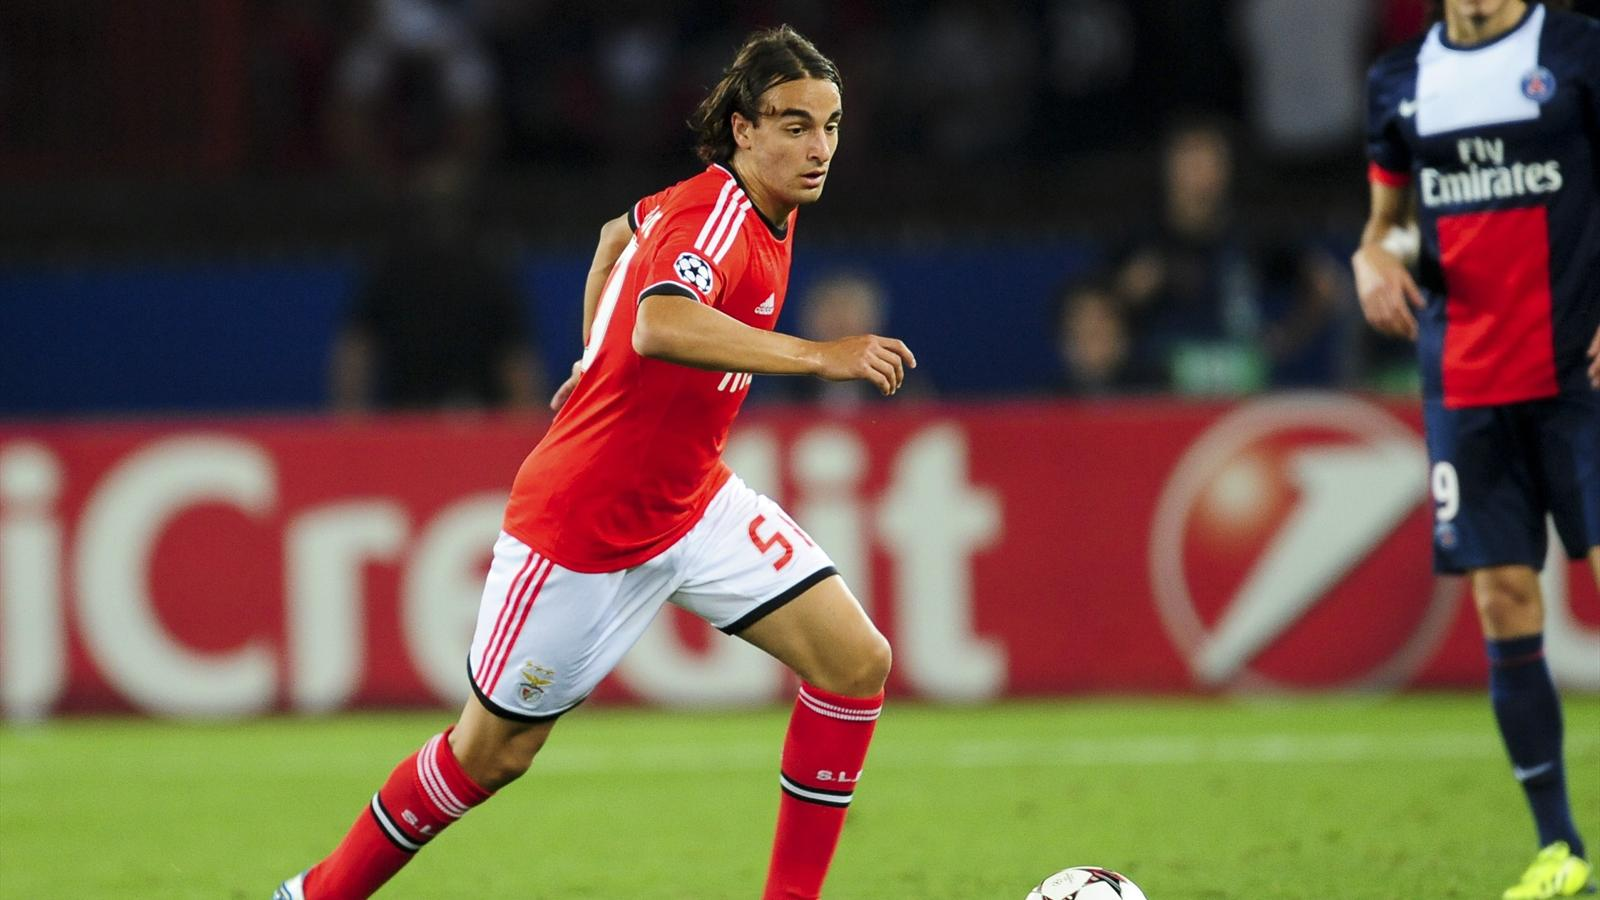 Lazar Markovic in action with Benfica Lisbonne in front of Paris Saint-Germain